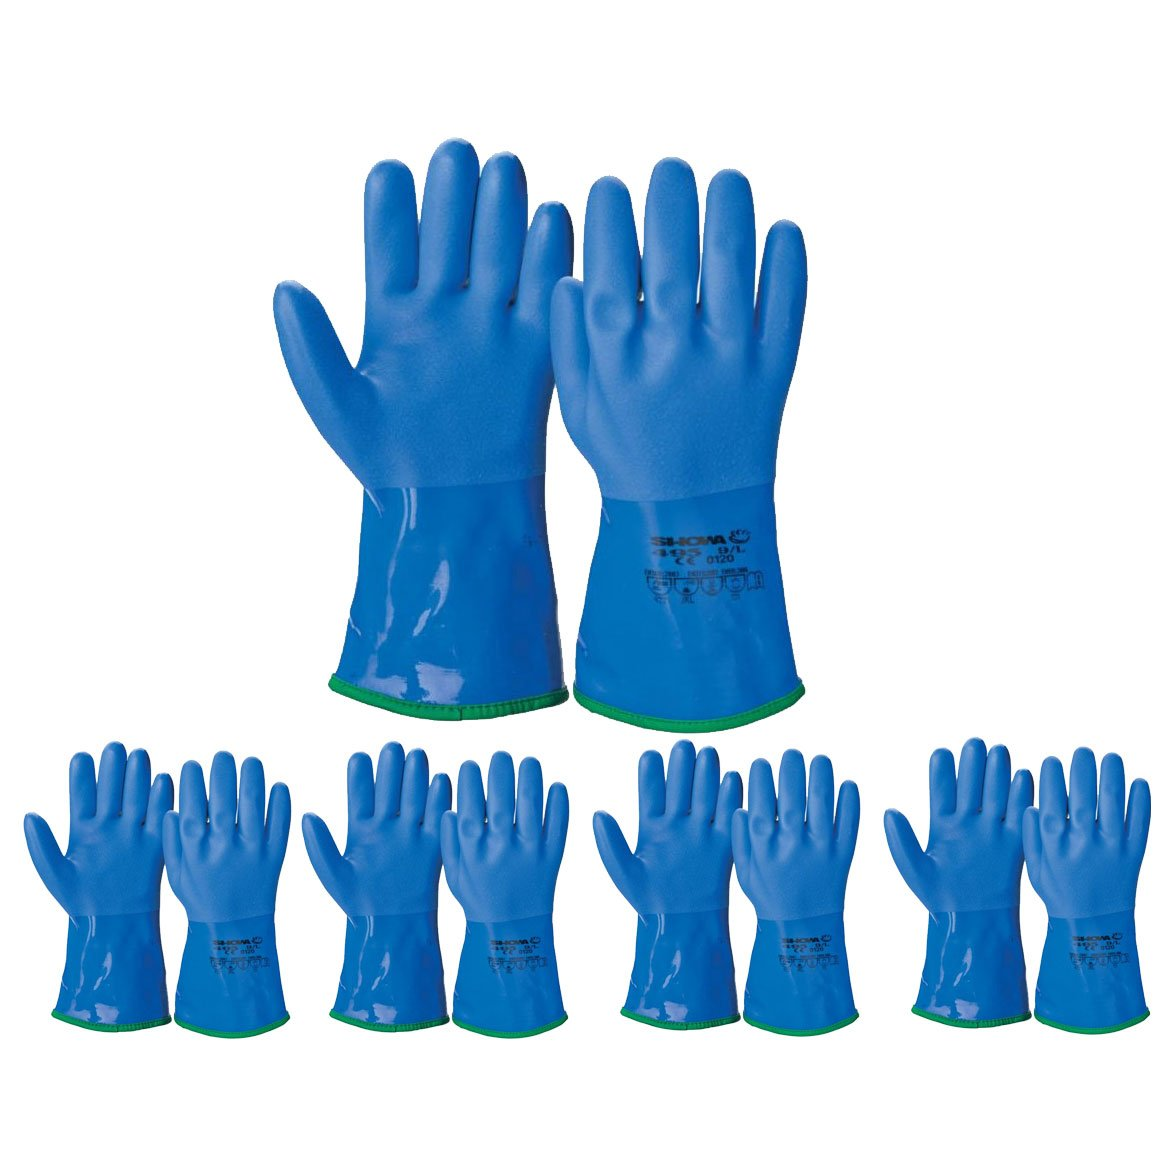 Atlas ATL495 Showa PVC Dipped Insulated Protective X-Large Work Gloves, 12-Pairs